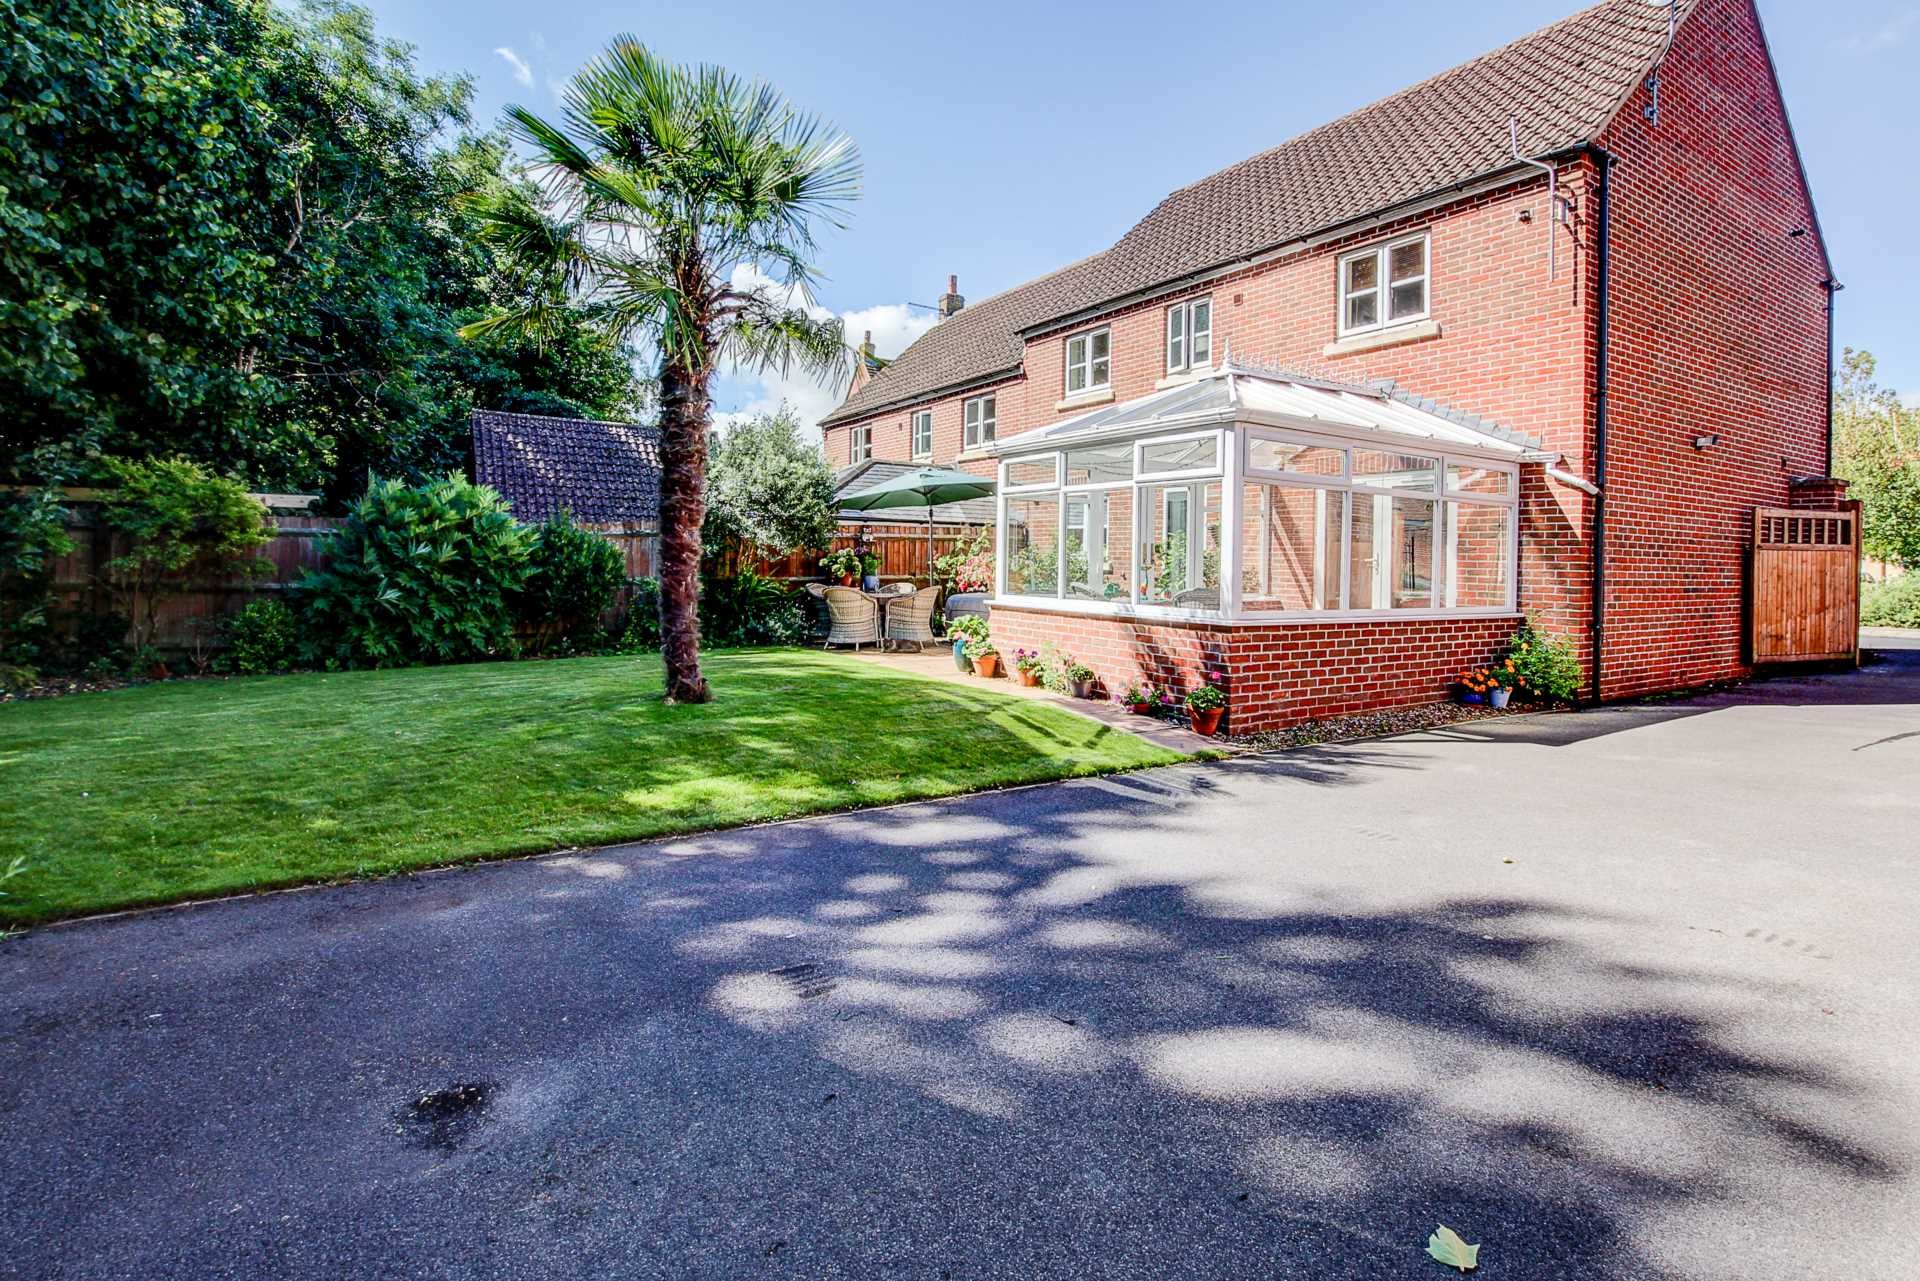 4 bed semi-detached house for sale in Westbury Way, Blandford Forum 4